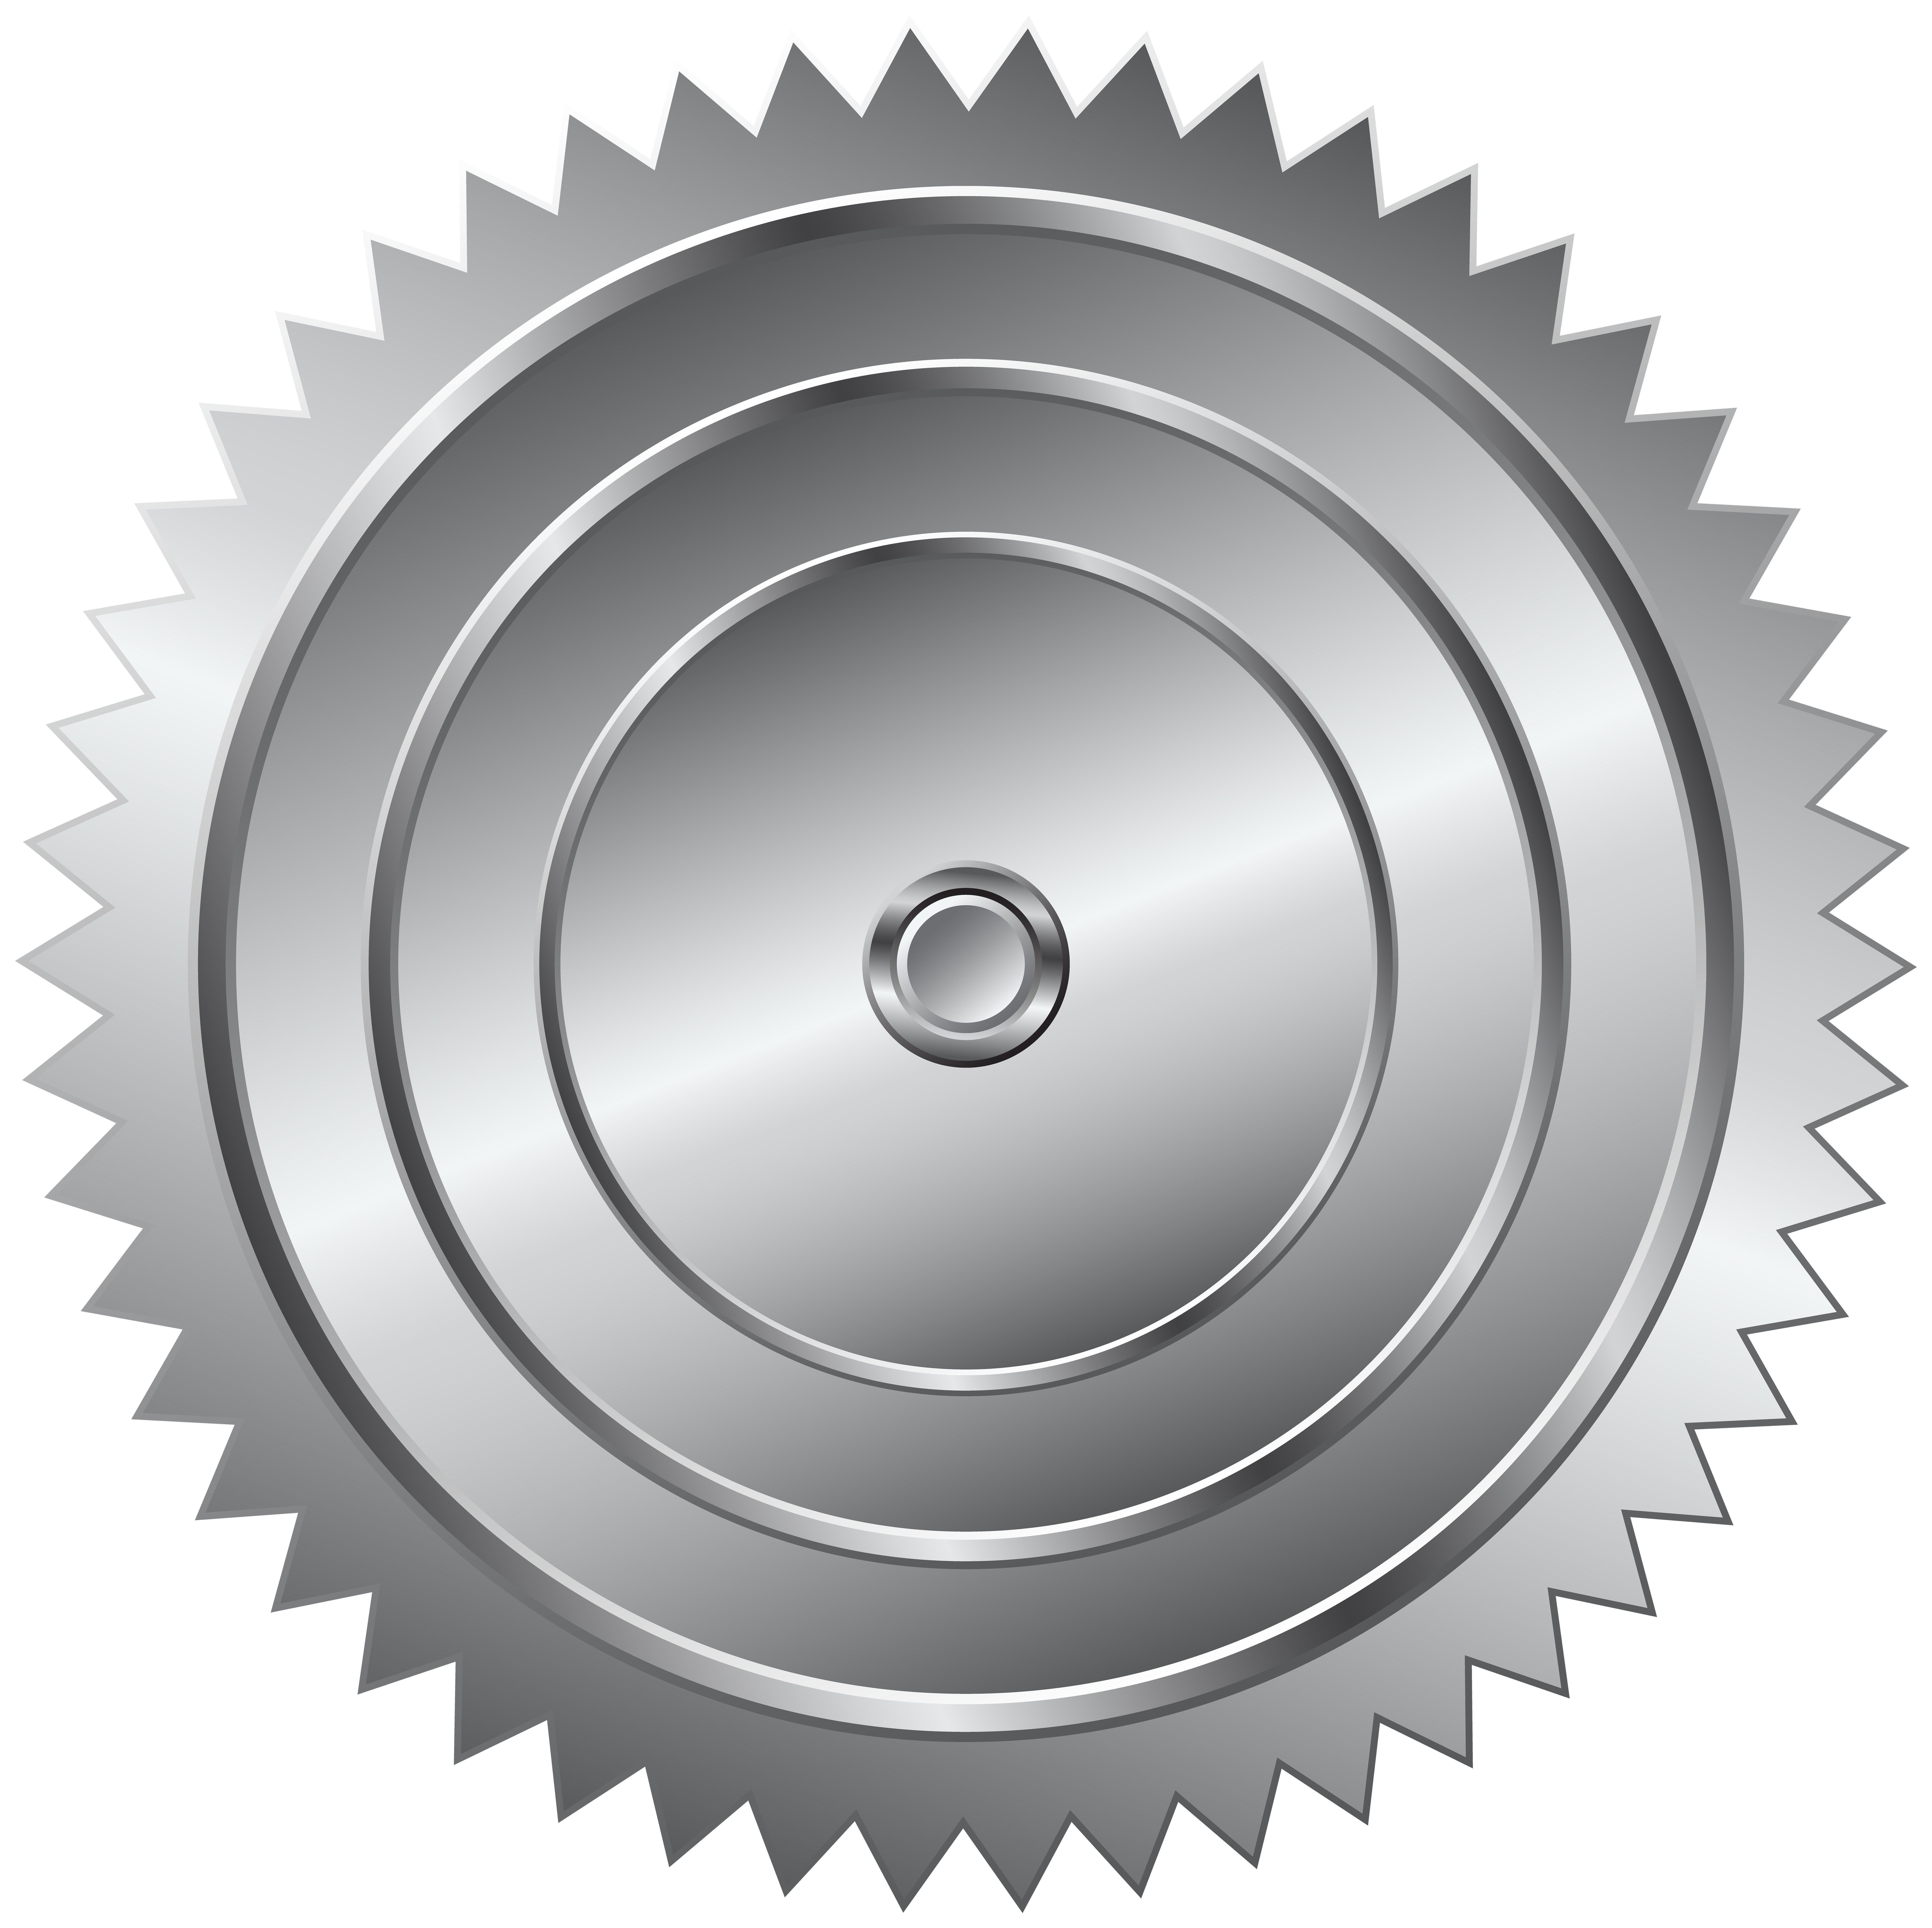 Gear silver clip art. Free saw blade png image black and white svg black and white download